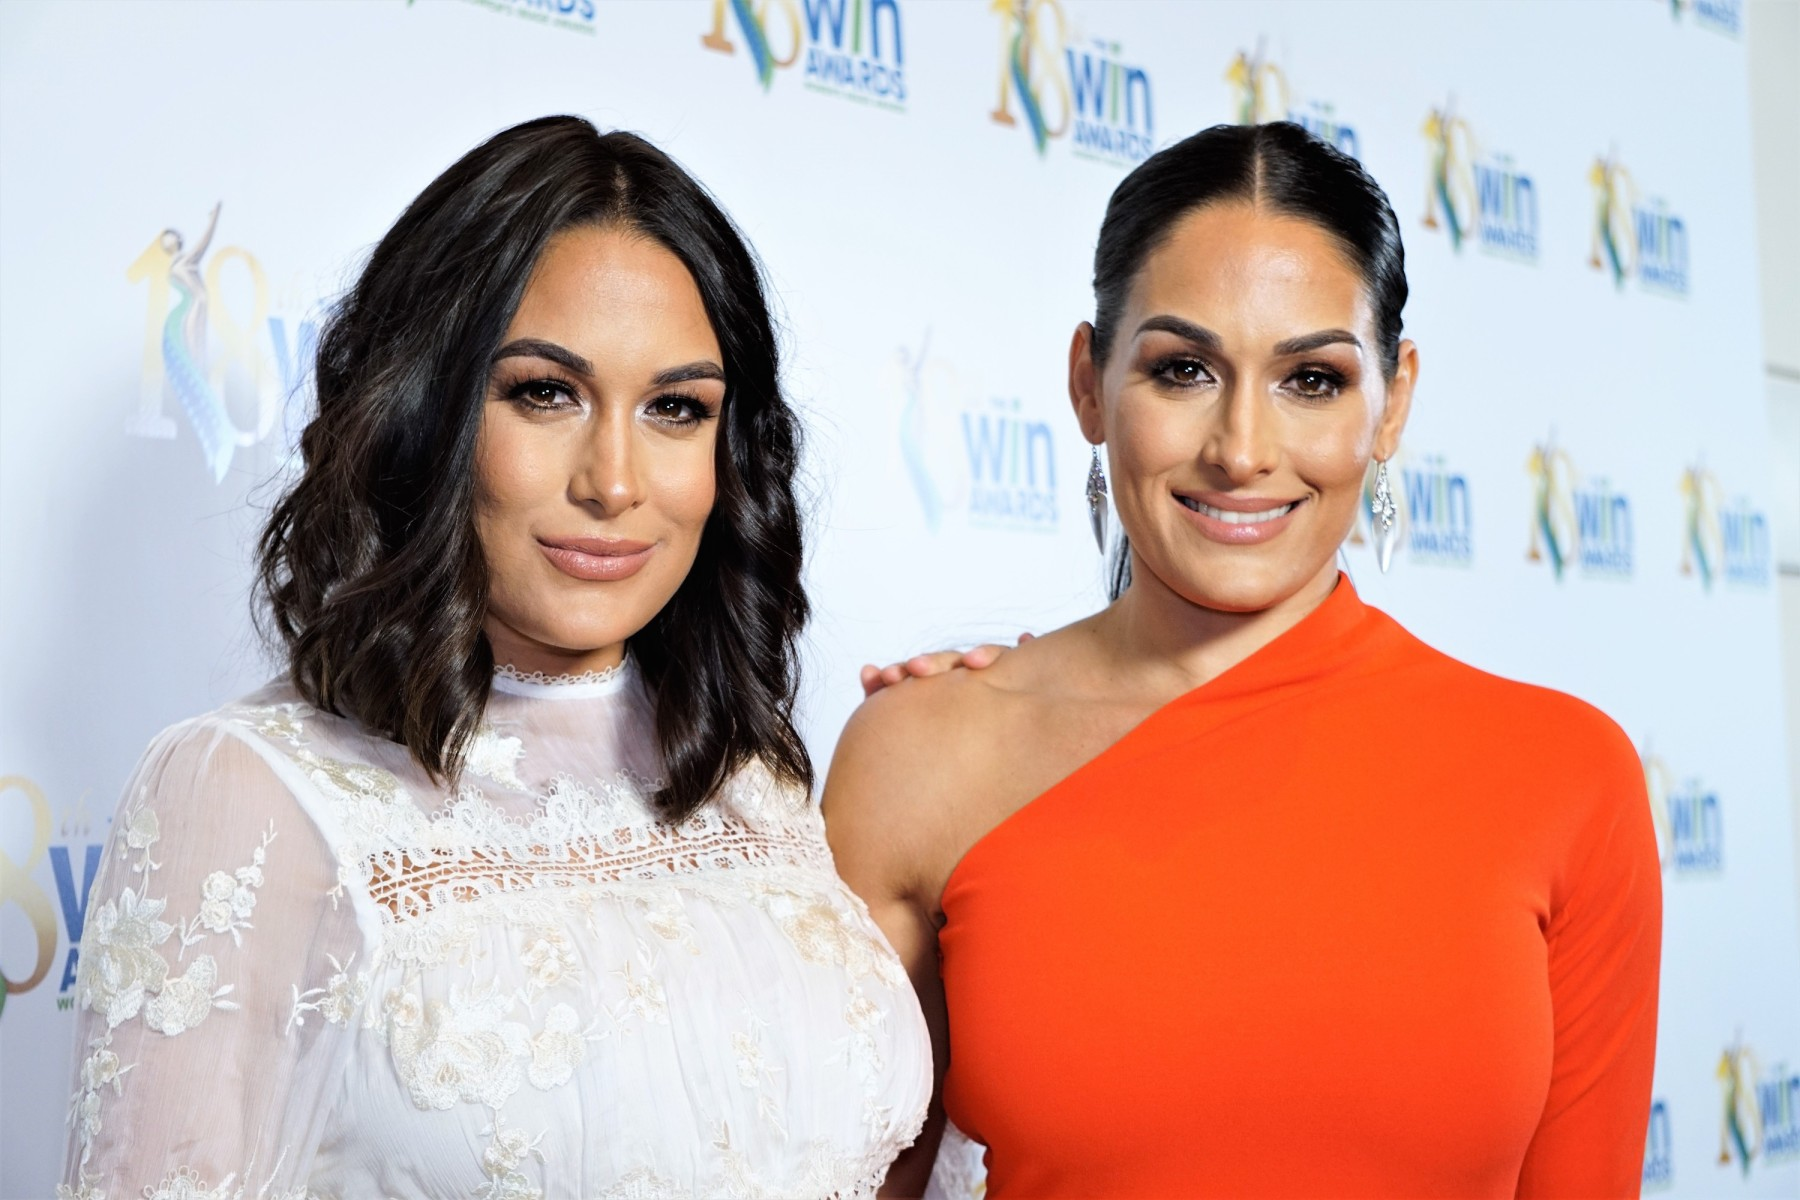 WWE superstars Nikki Bella and Brie Bella attend the 18th Annual Women's Image Awards at Skirball Cultural Center on February 17, 2017 in Los Angeles, California. The Bella Twins recently returned to the WWE ring. (Photo by Mintaha Neslihan Erolu/Anadolu Agency/Getty Images)